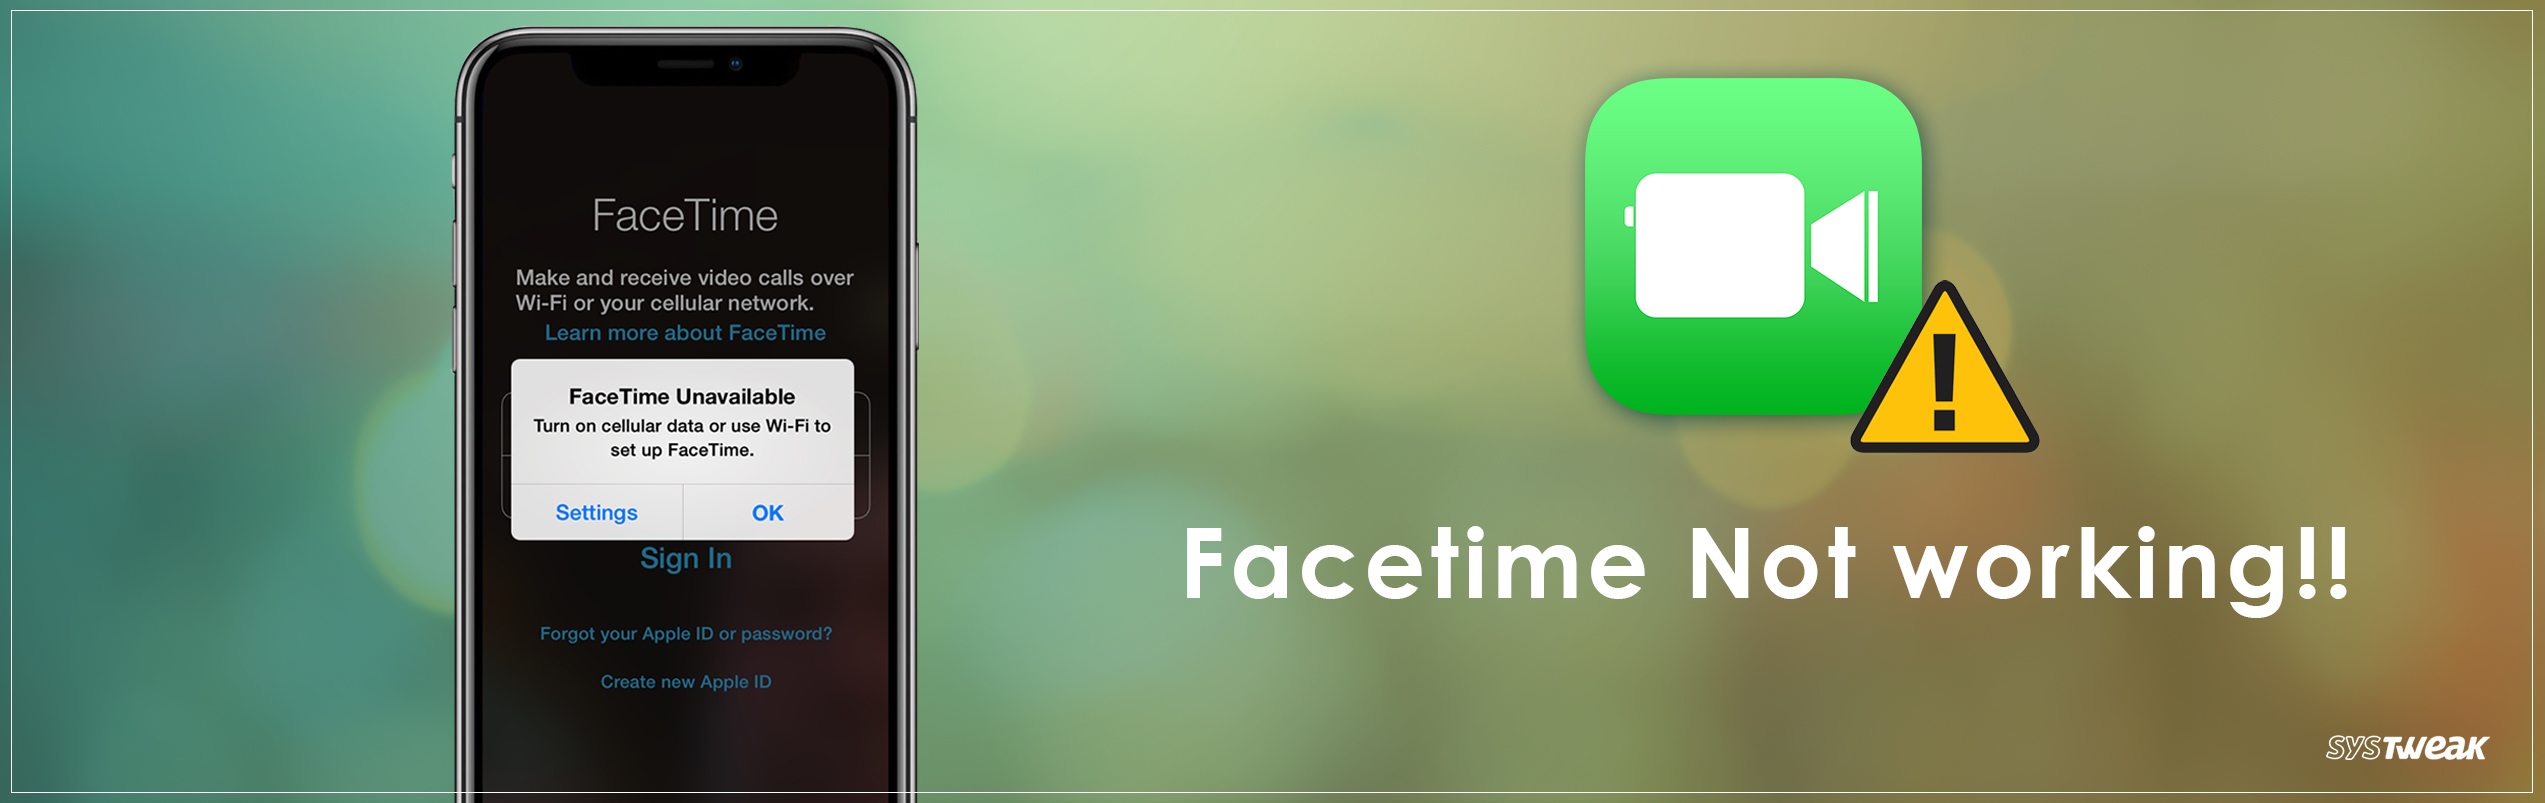 "How to Fix ""FaceTime App Not Working On iPhone and iPad"""